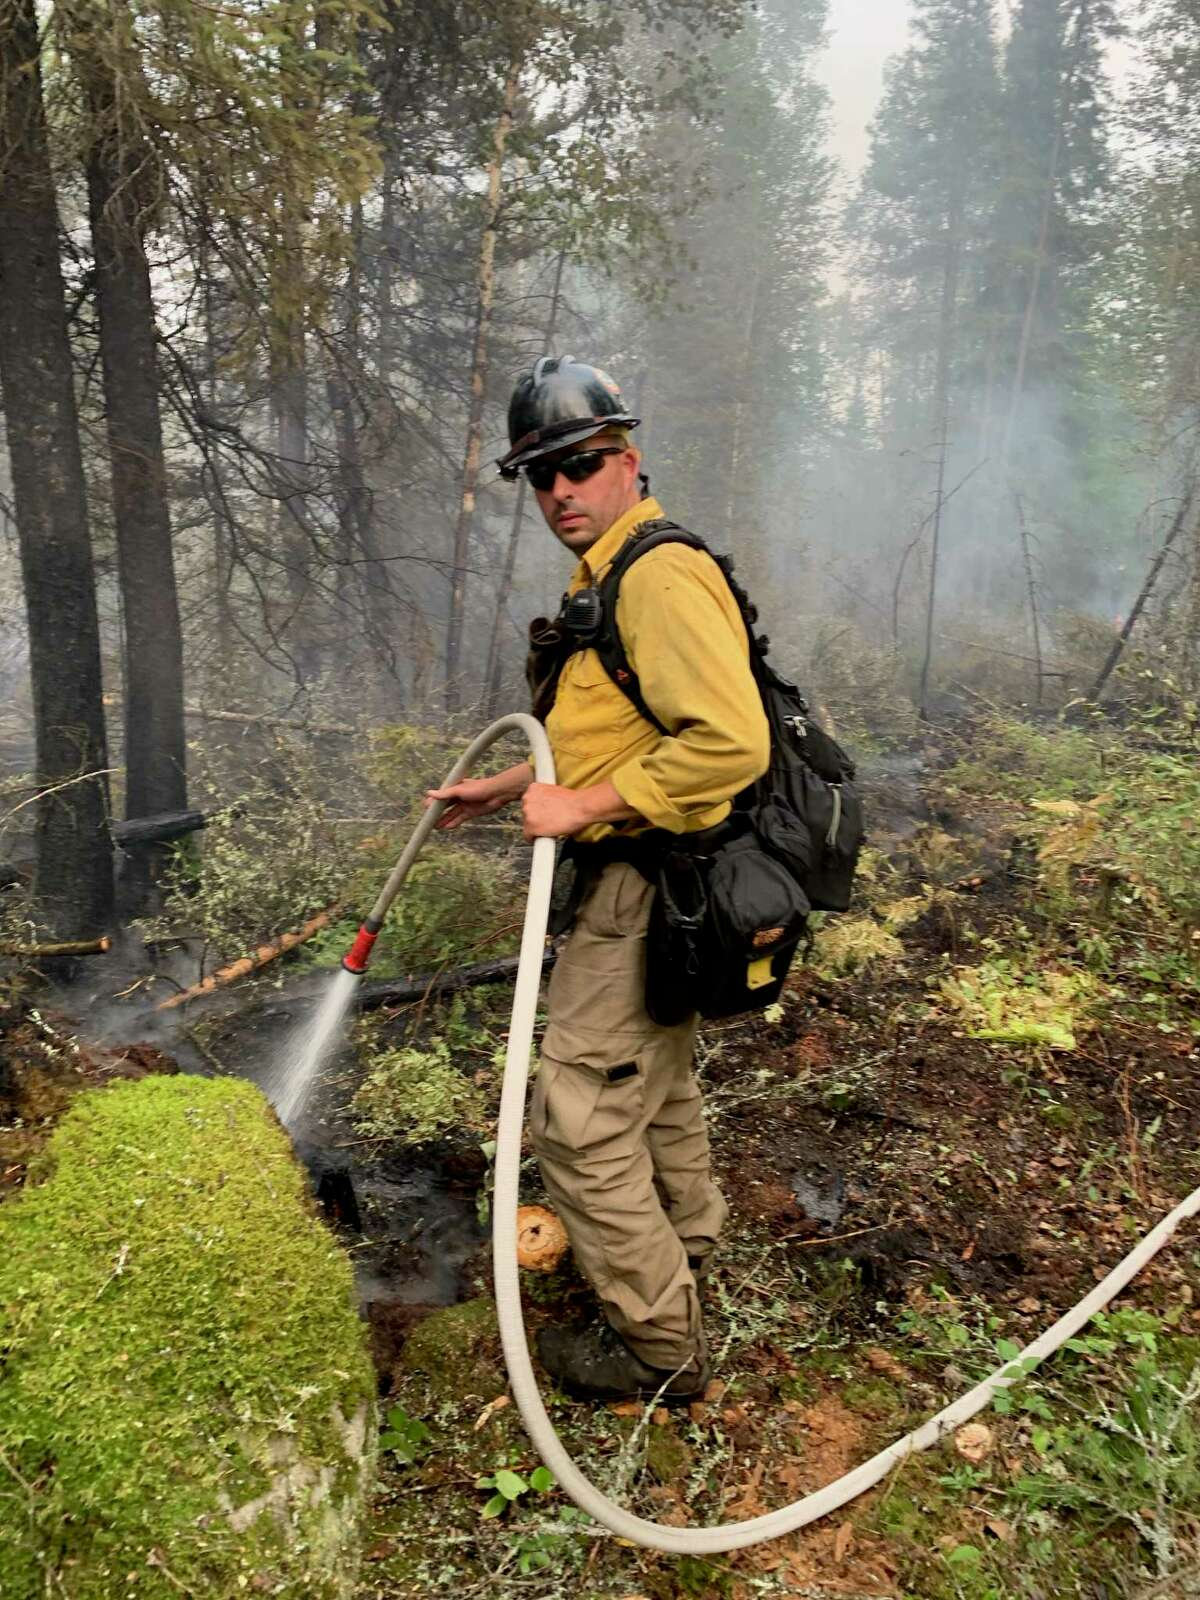 Deputy Chief Michael Kronick, from the Westport Fire Department, was on assignment from July 29 to Aug. 14, 2021 with the Connecticut Interstate Fire Crew. During the assignment, the crew worked to battle and contain wildfires in Minnesota and Montana.